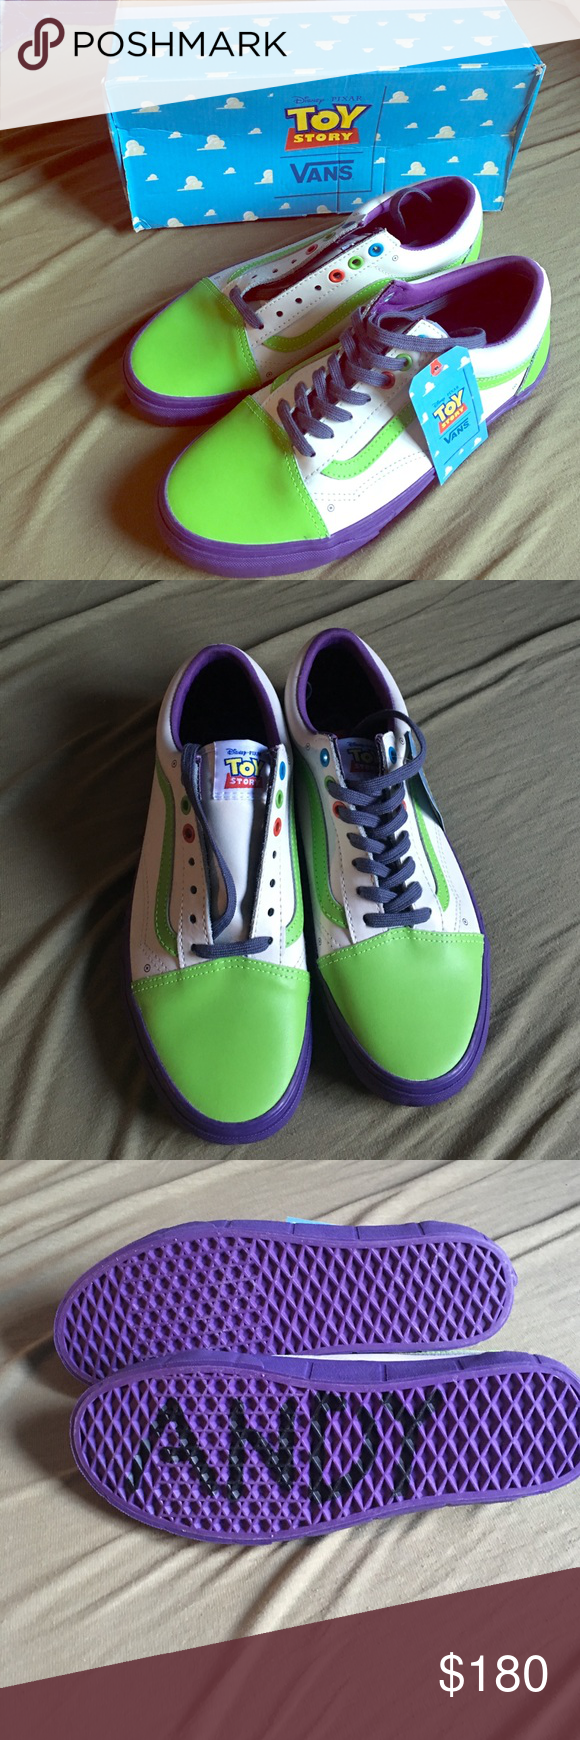 c69d8ab6e44822 Toy Story Vans Toy Story limited edition vans. Old skool Buzz Lightyear.  Brand new